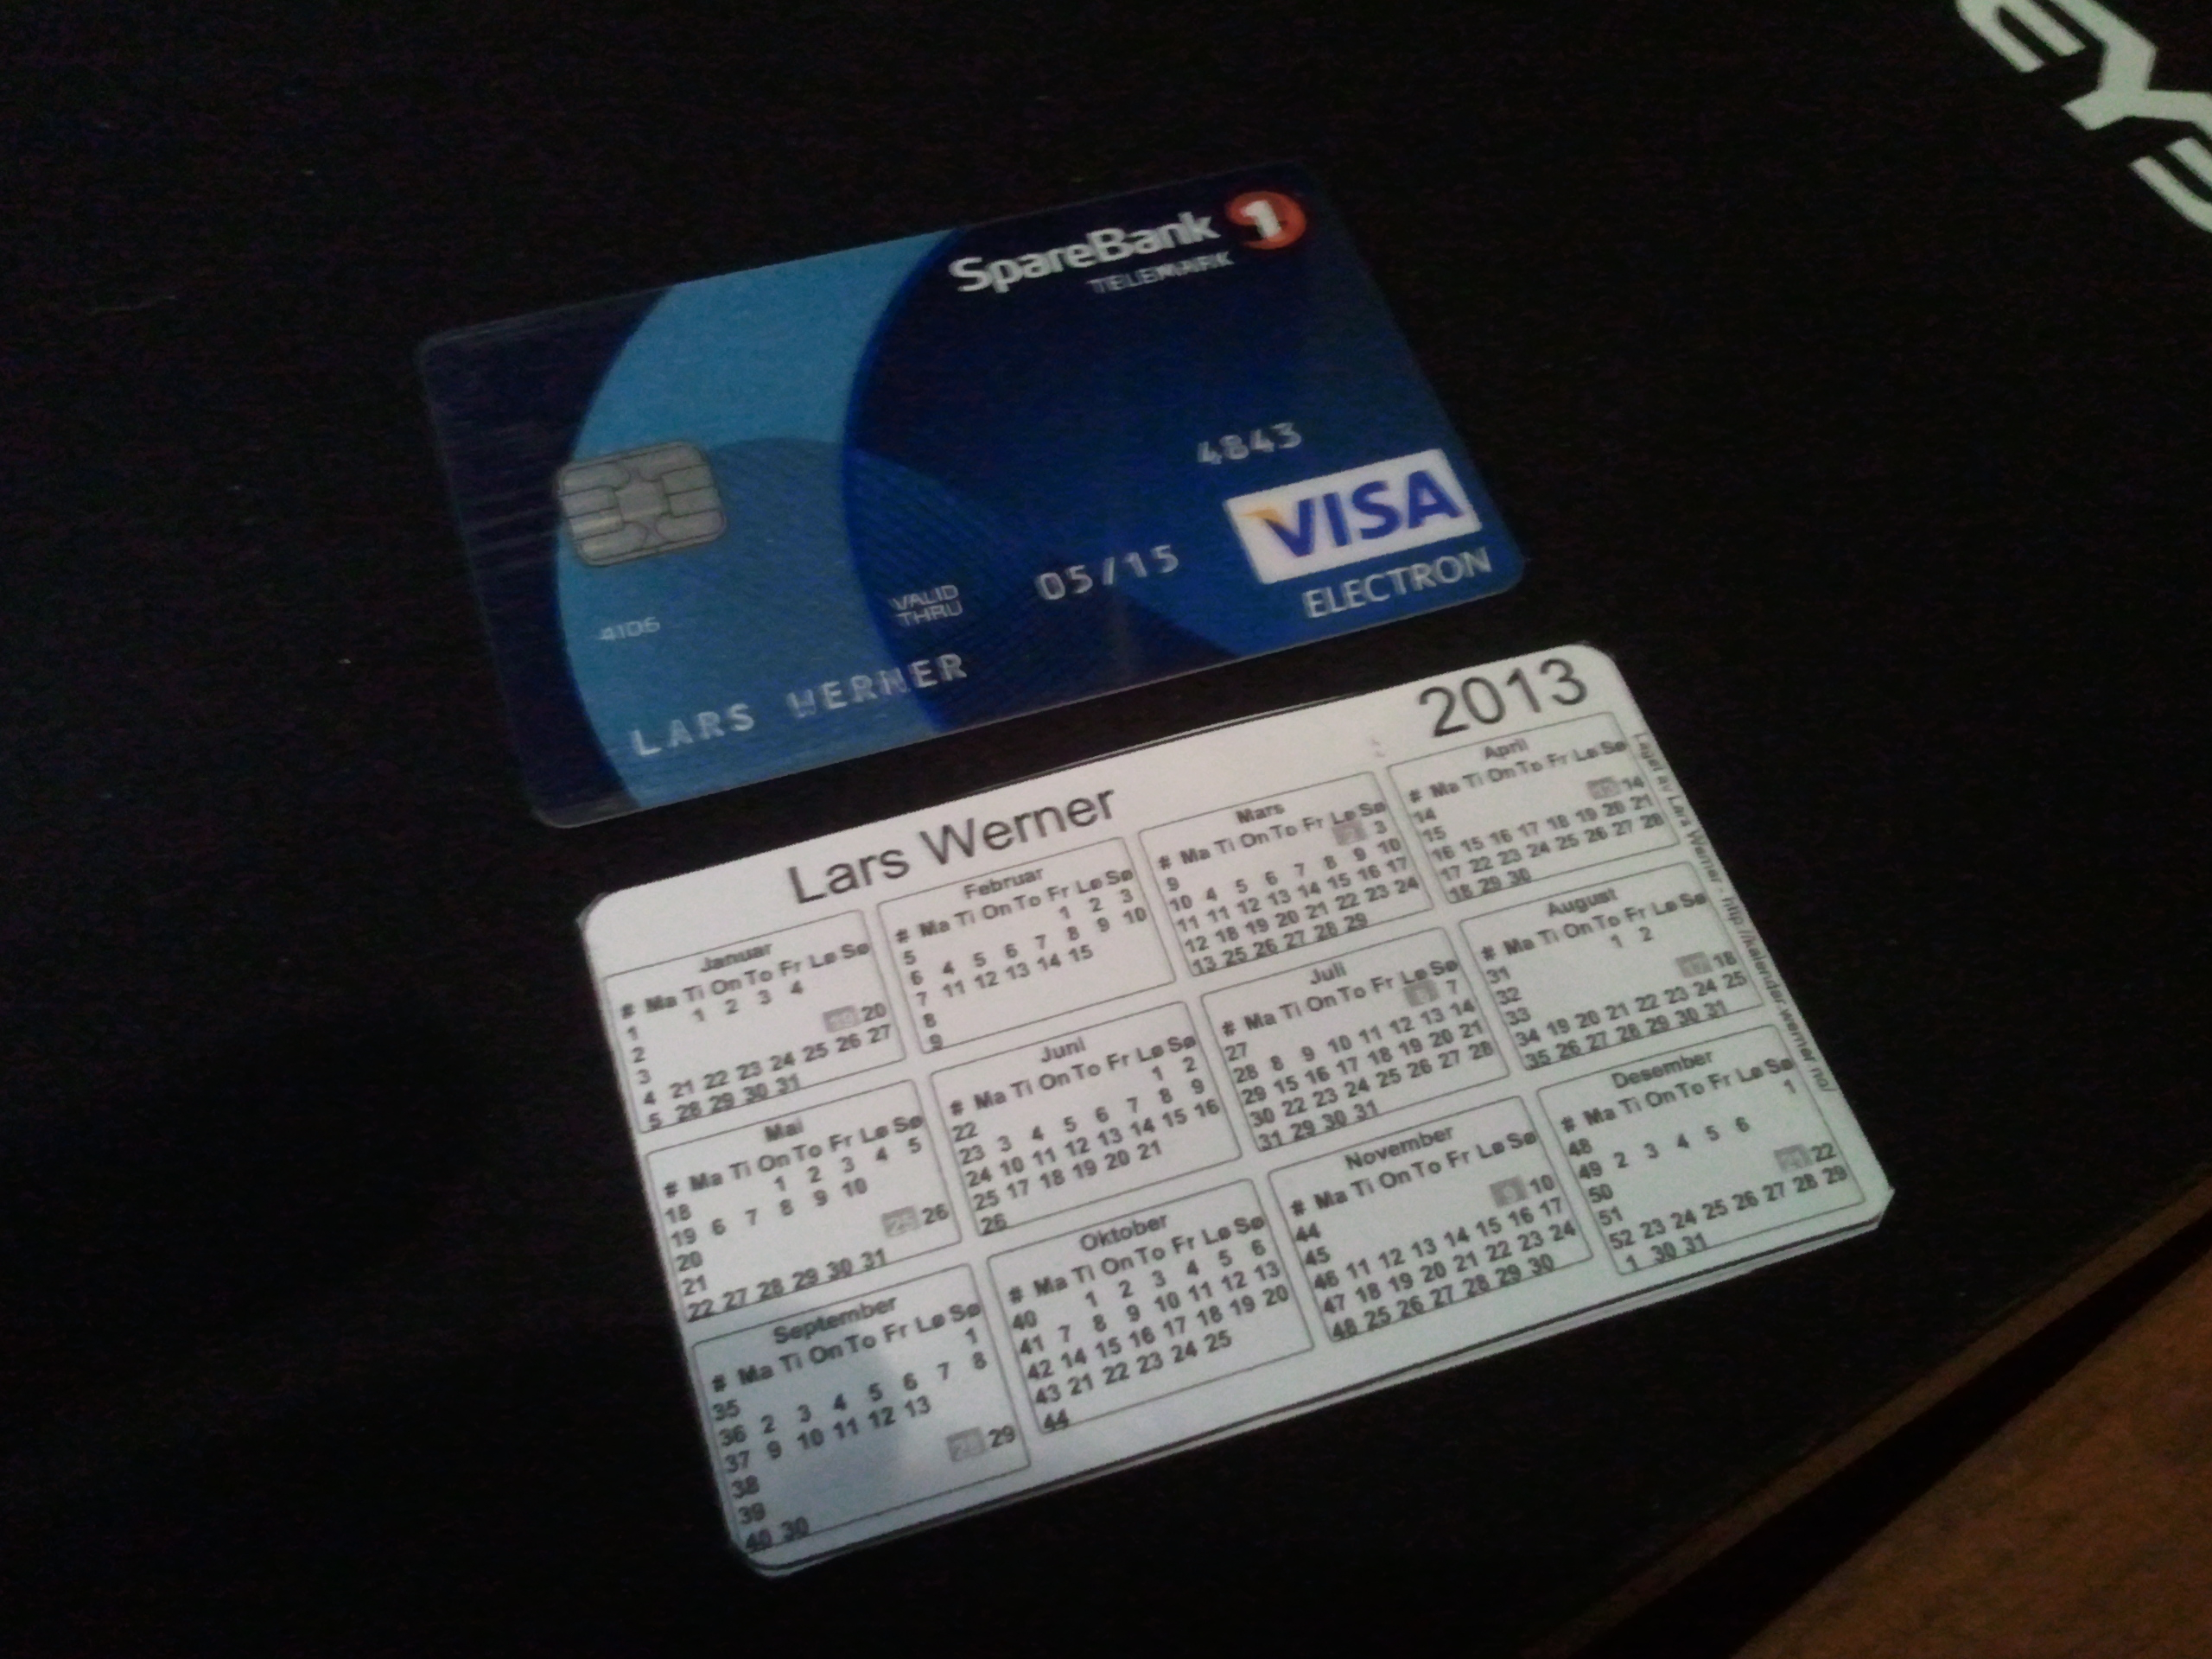 Get A Credit Card Calendar Of Your Offshore Rotation regarding Offshore Rotation Calendar